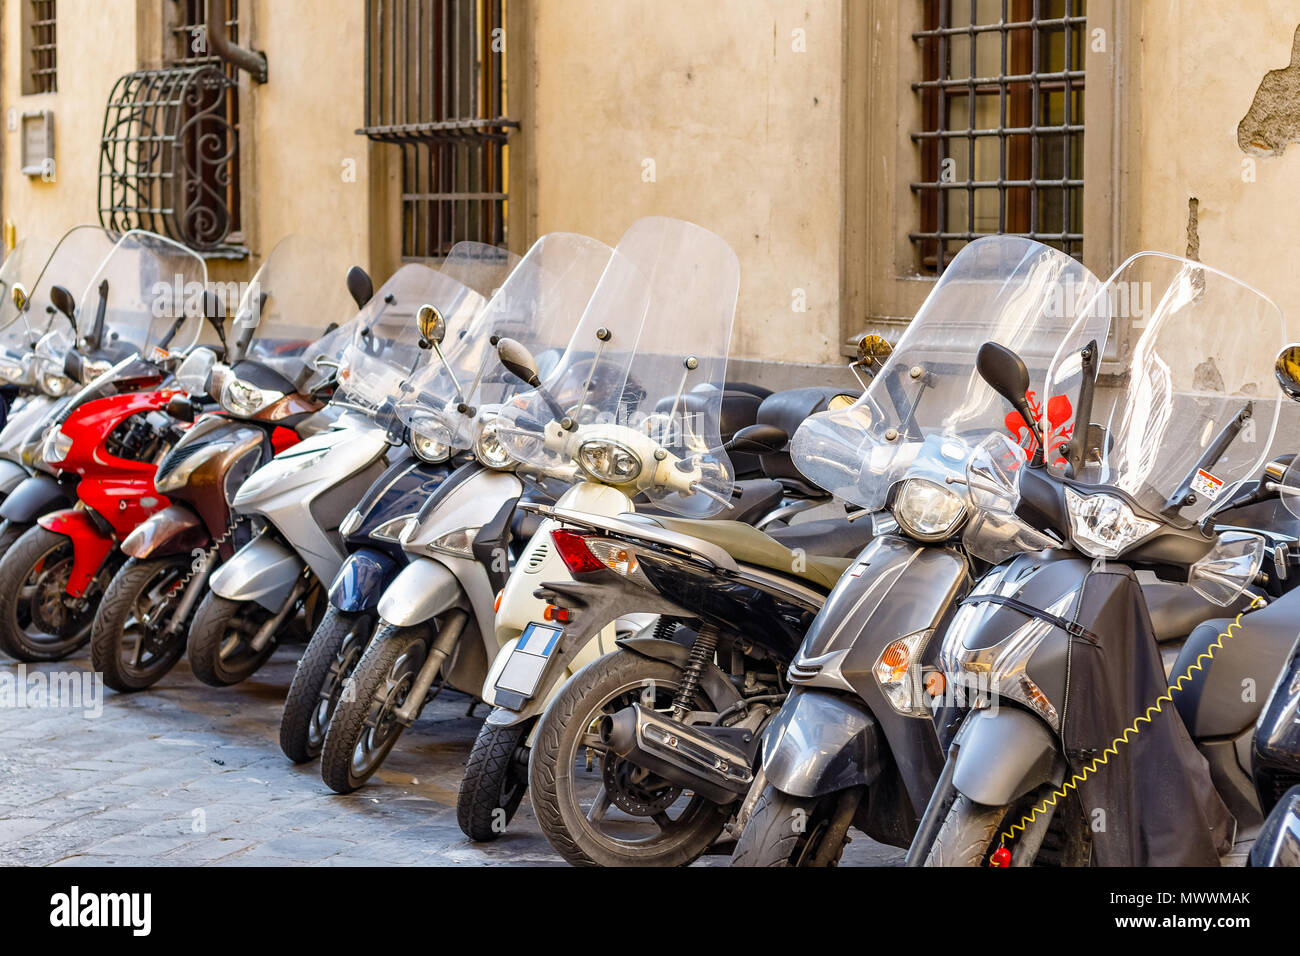 A typical street of Florence with motorcycle scooters parked in row in Italy - Stock Image